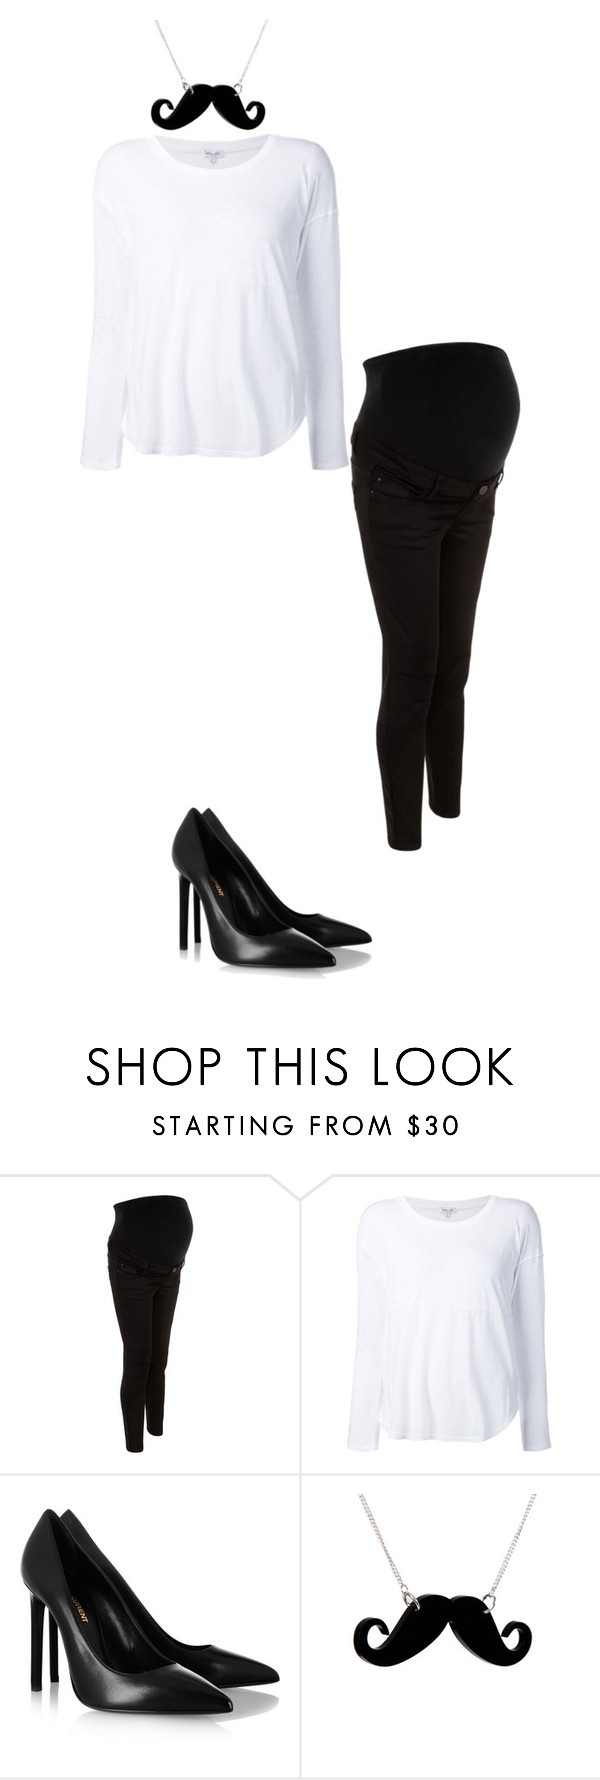 """""""#3809"""" by ferfletcher ❤ liked on Polyvore featuring New Look, Splendid, Yves Saint Laurent and Tatty Devine"""